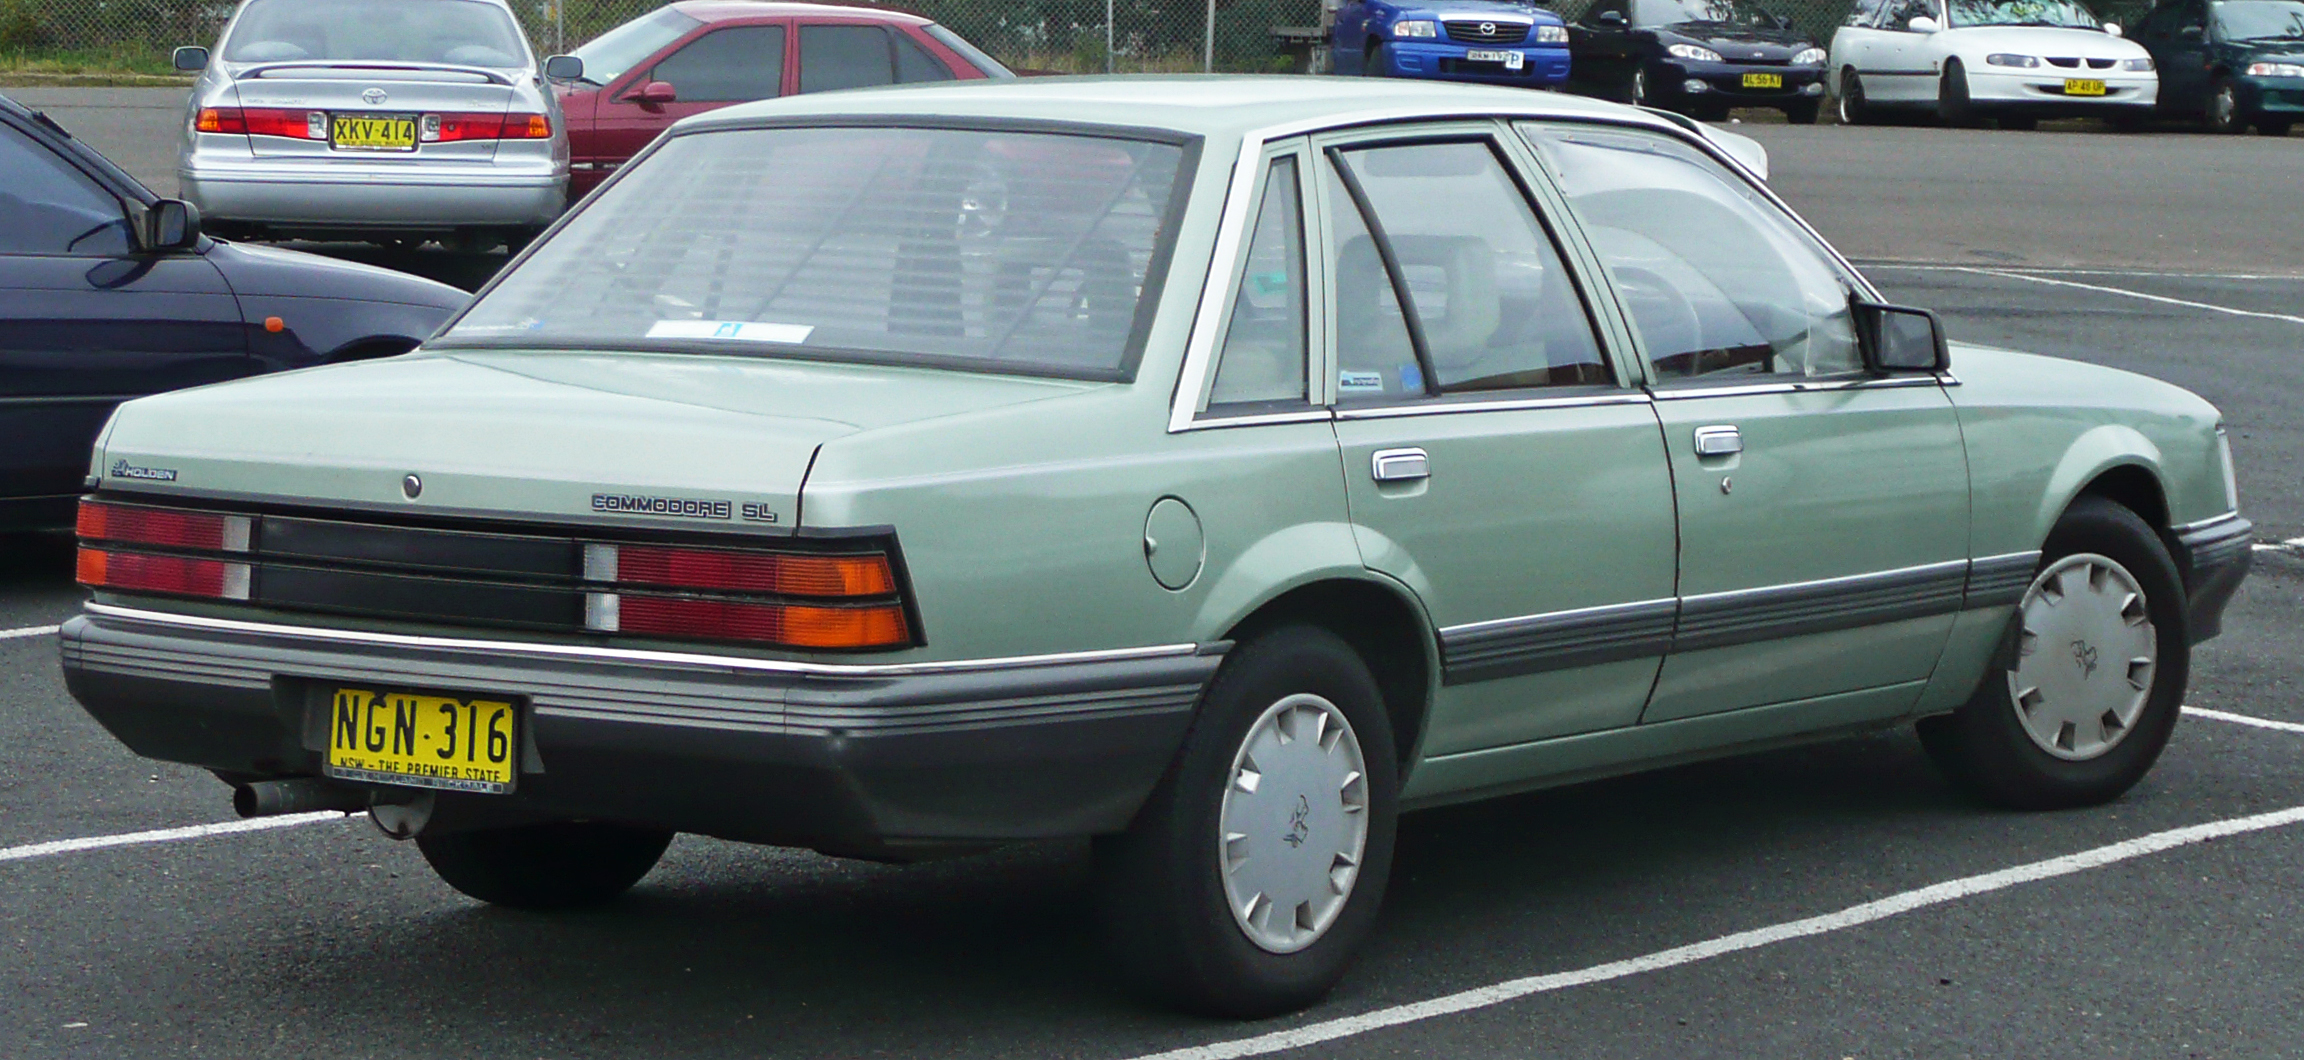 1984-1986_holden_vk_commodore_sl.jpg